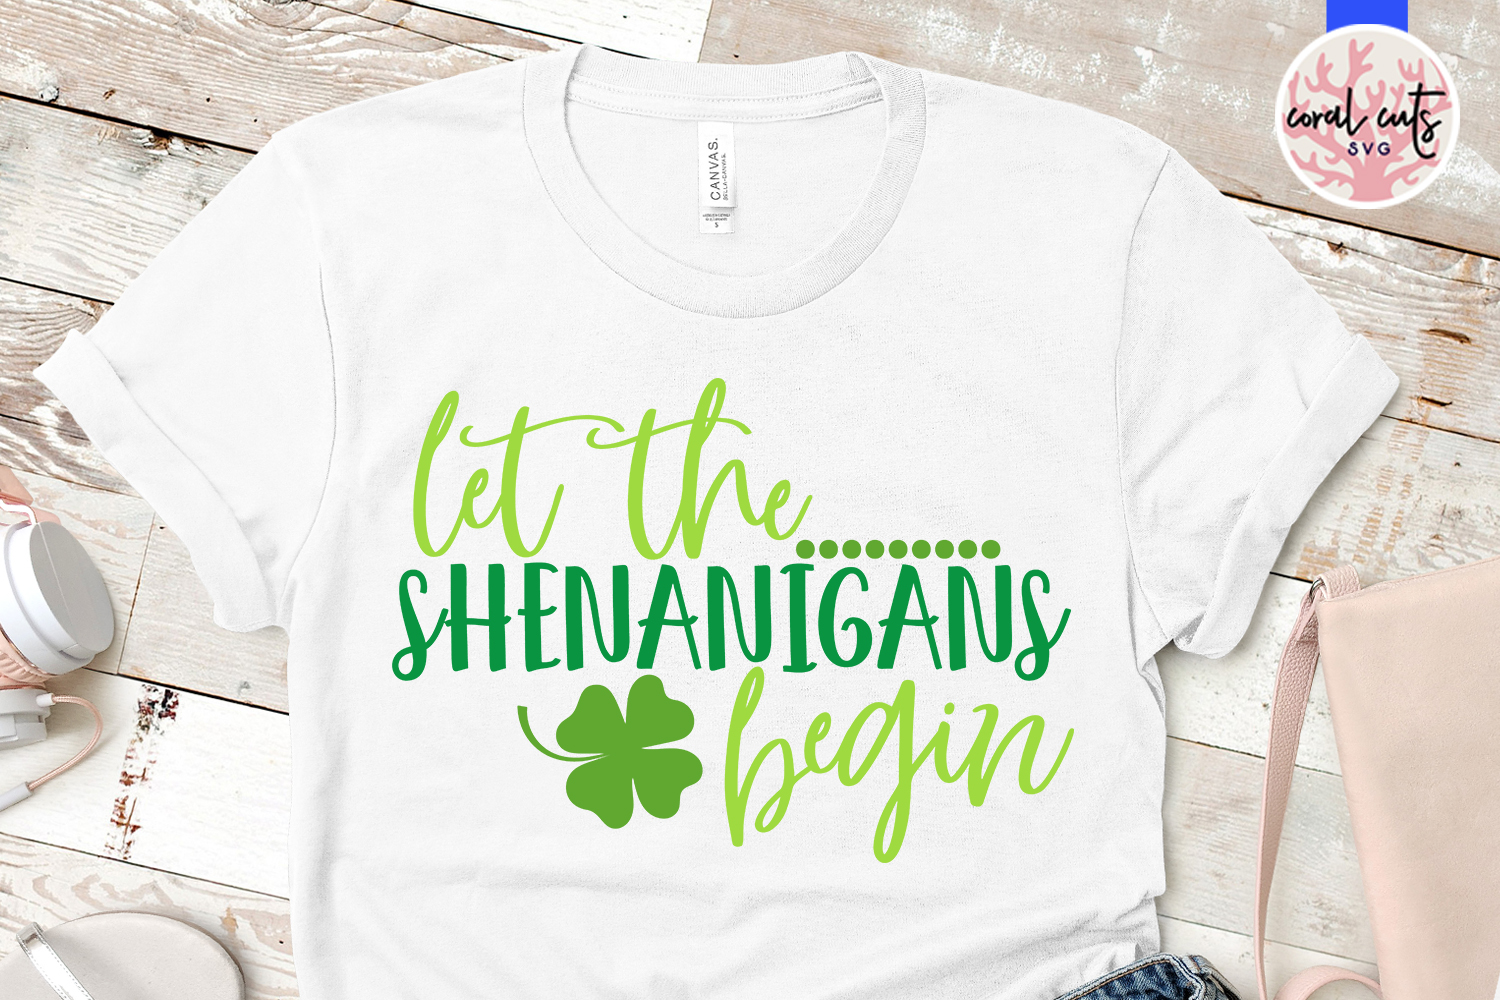 Let the shenanigans begin - St. Patrick's Day SVG EPS DXF example image 2